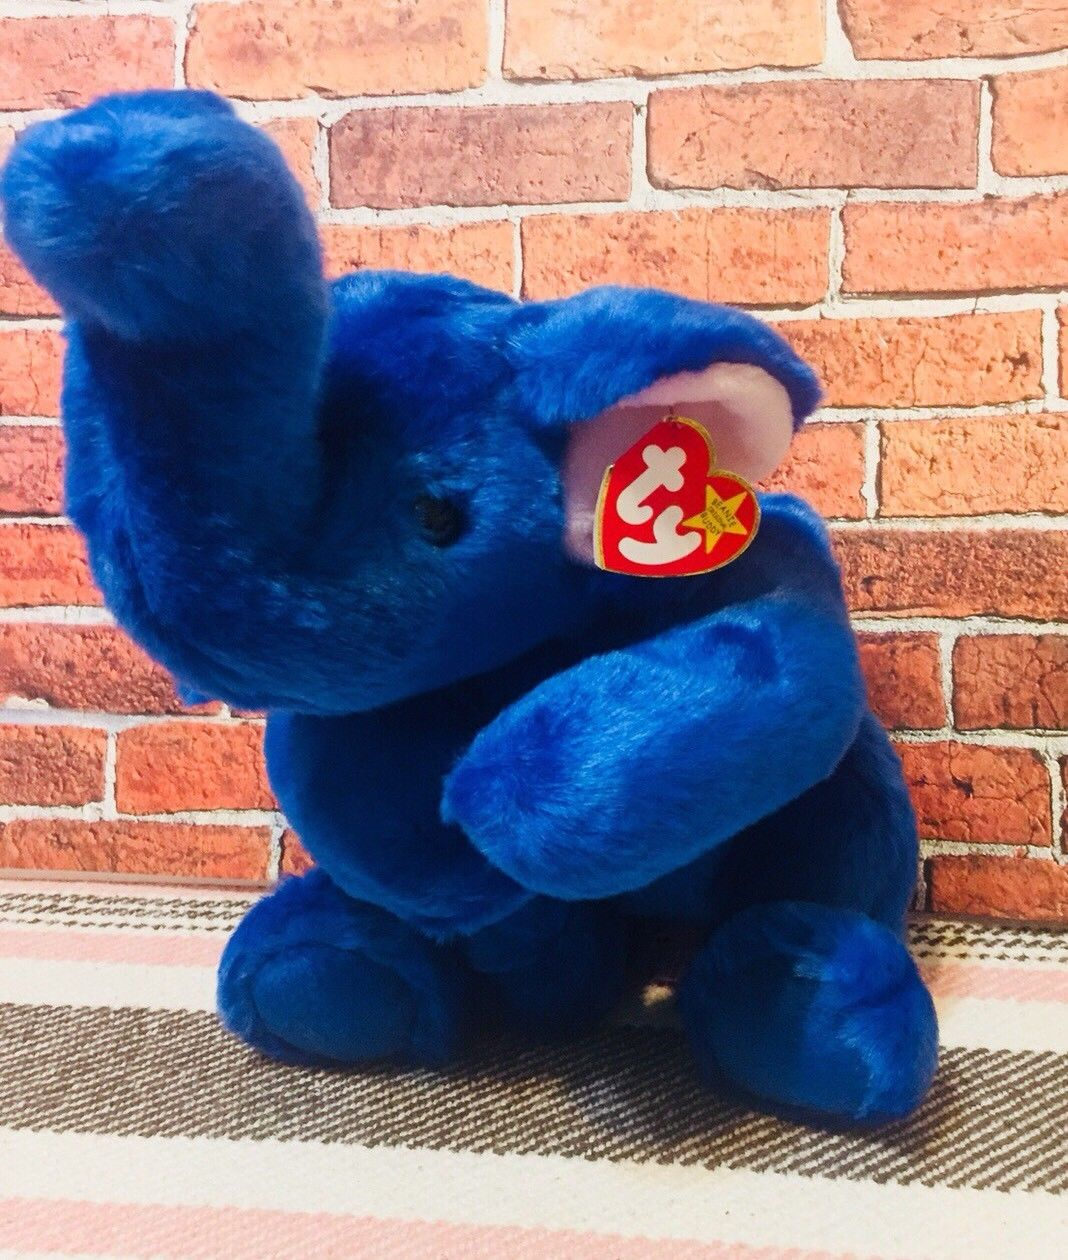 Princess Diana Beanie Babies and More Popular Toys and ...